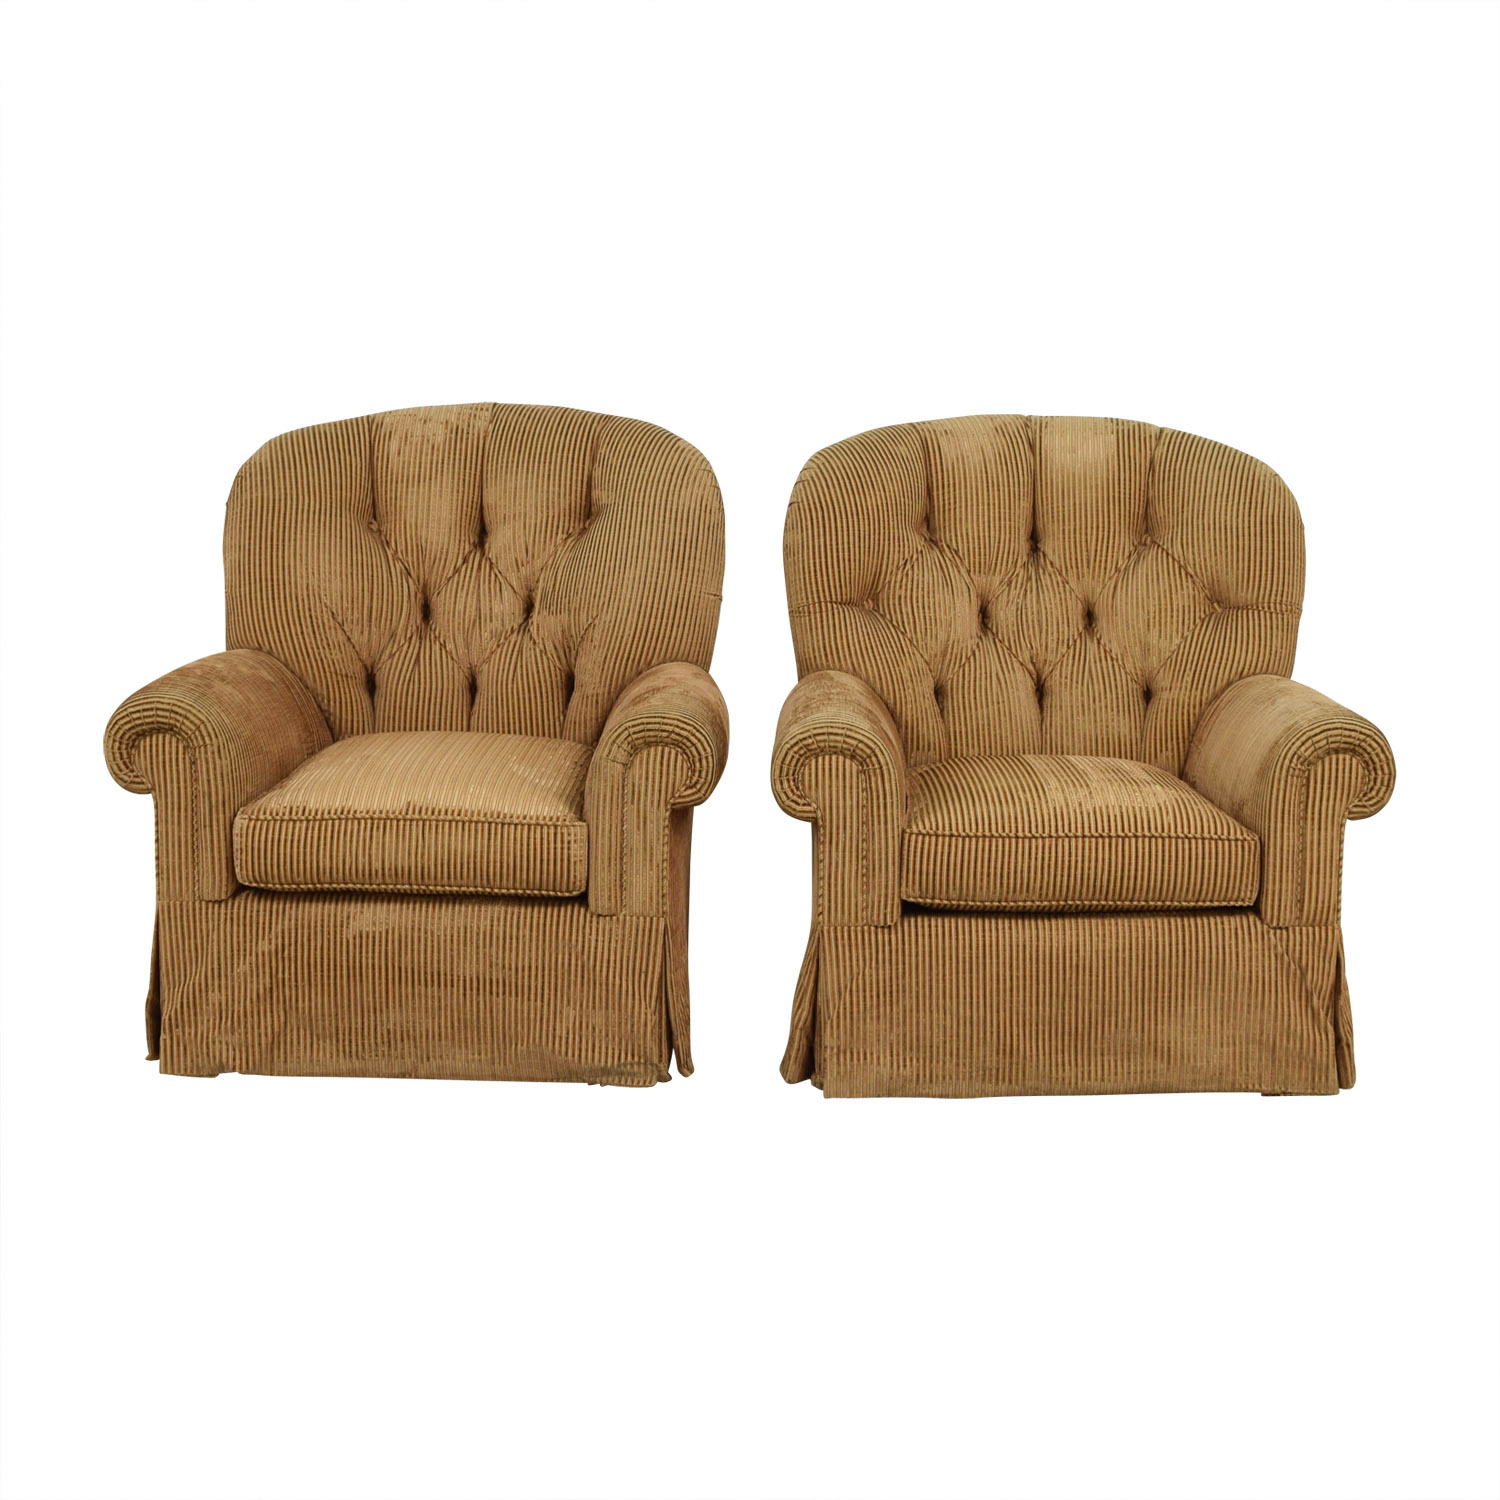 Furniture Masters Furniture Masters Brown Tufted Club Chairs